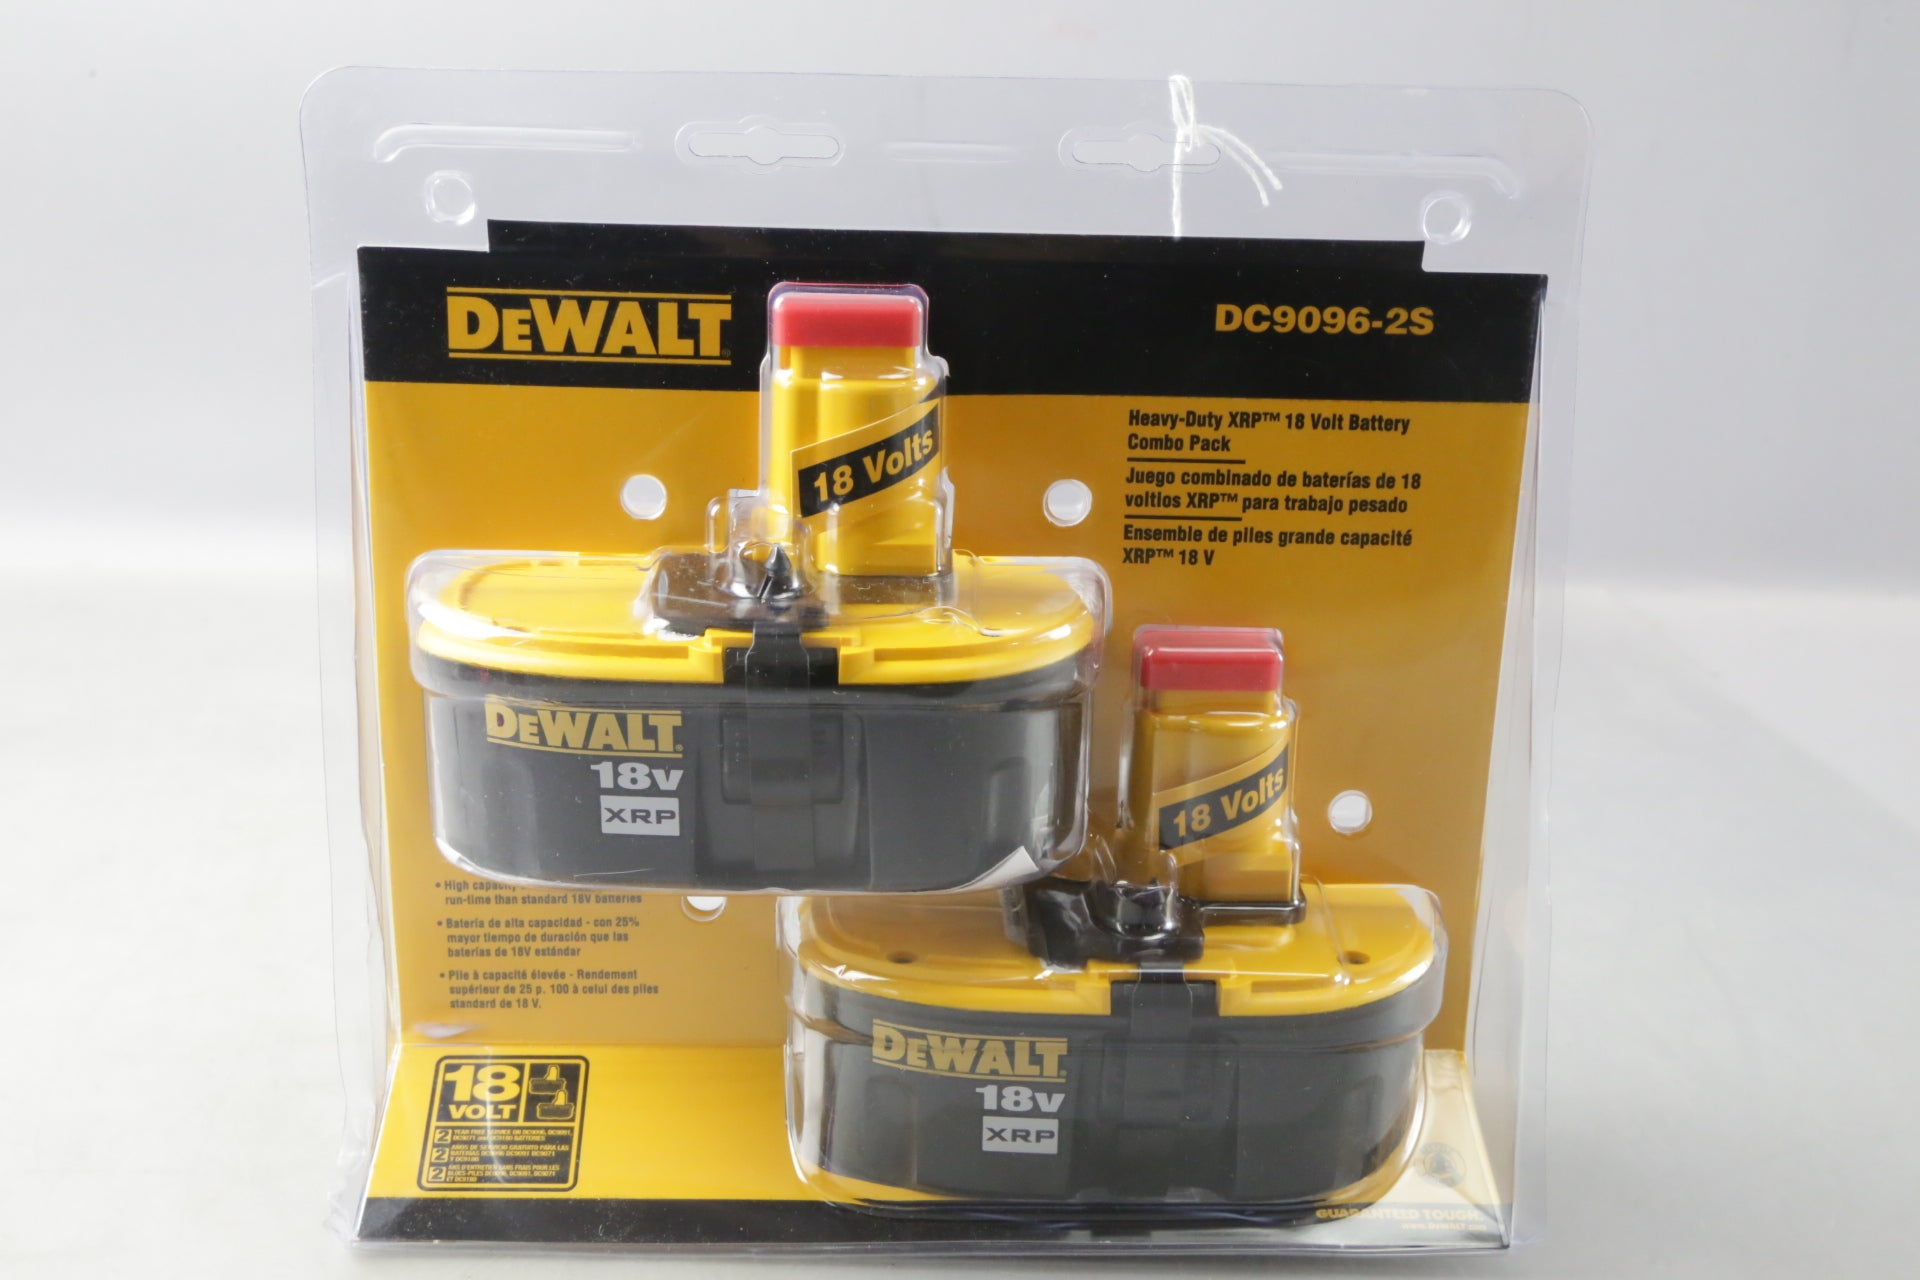 DeWALT DC9096-2S 18-Volt XRP NiCd Extended Runtime 2.4 Ah Battery (2-Pack)